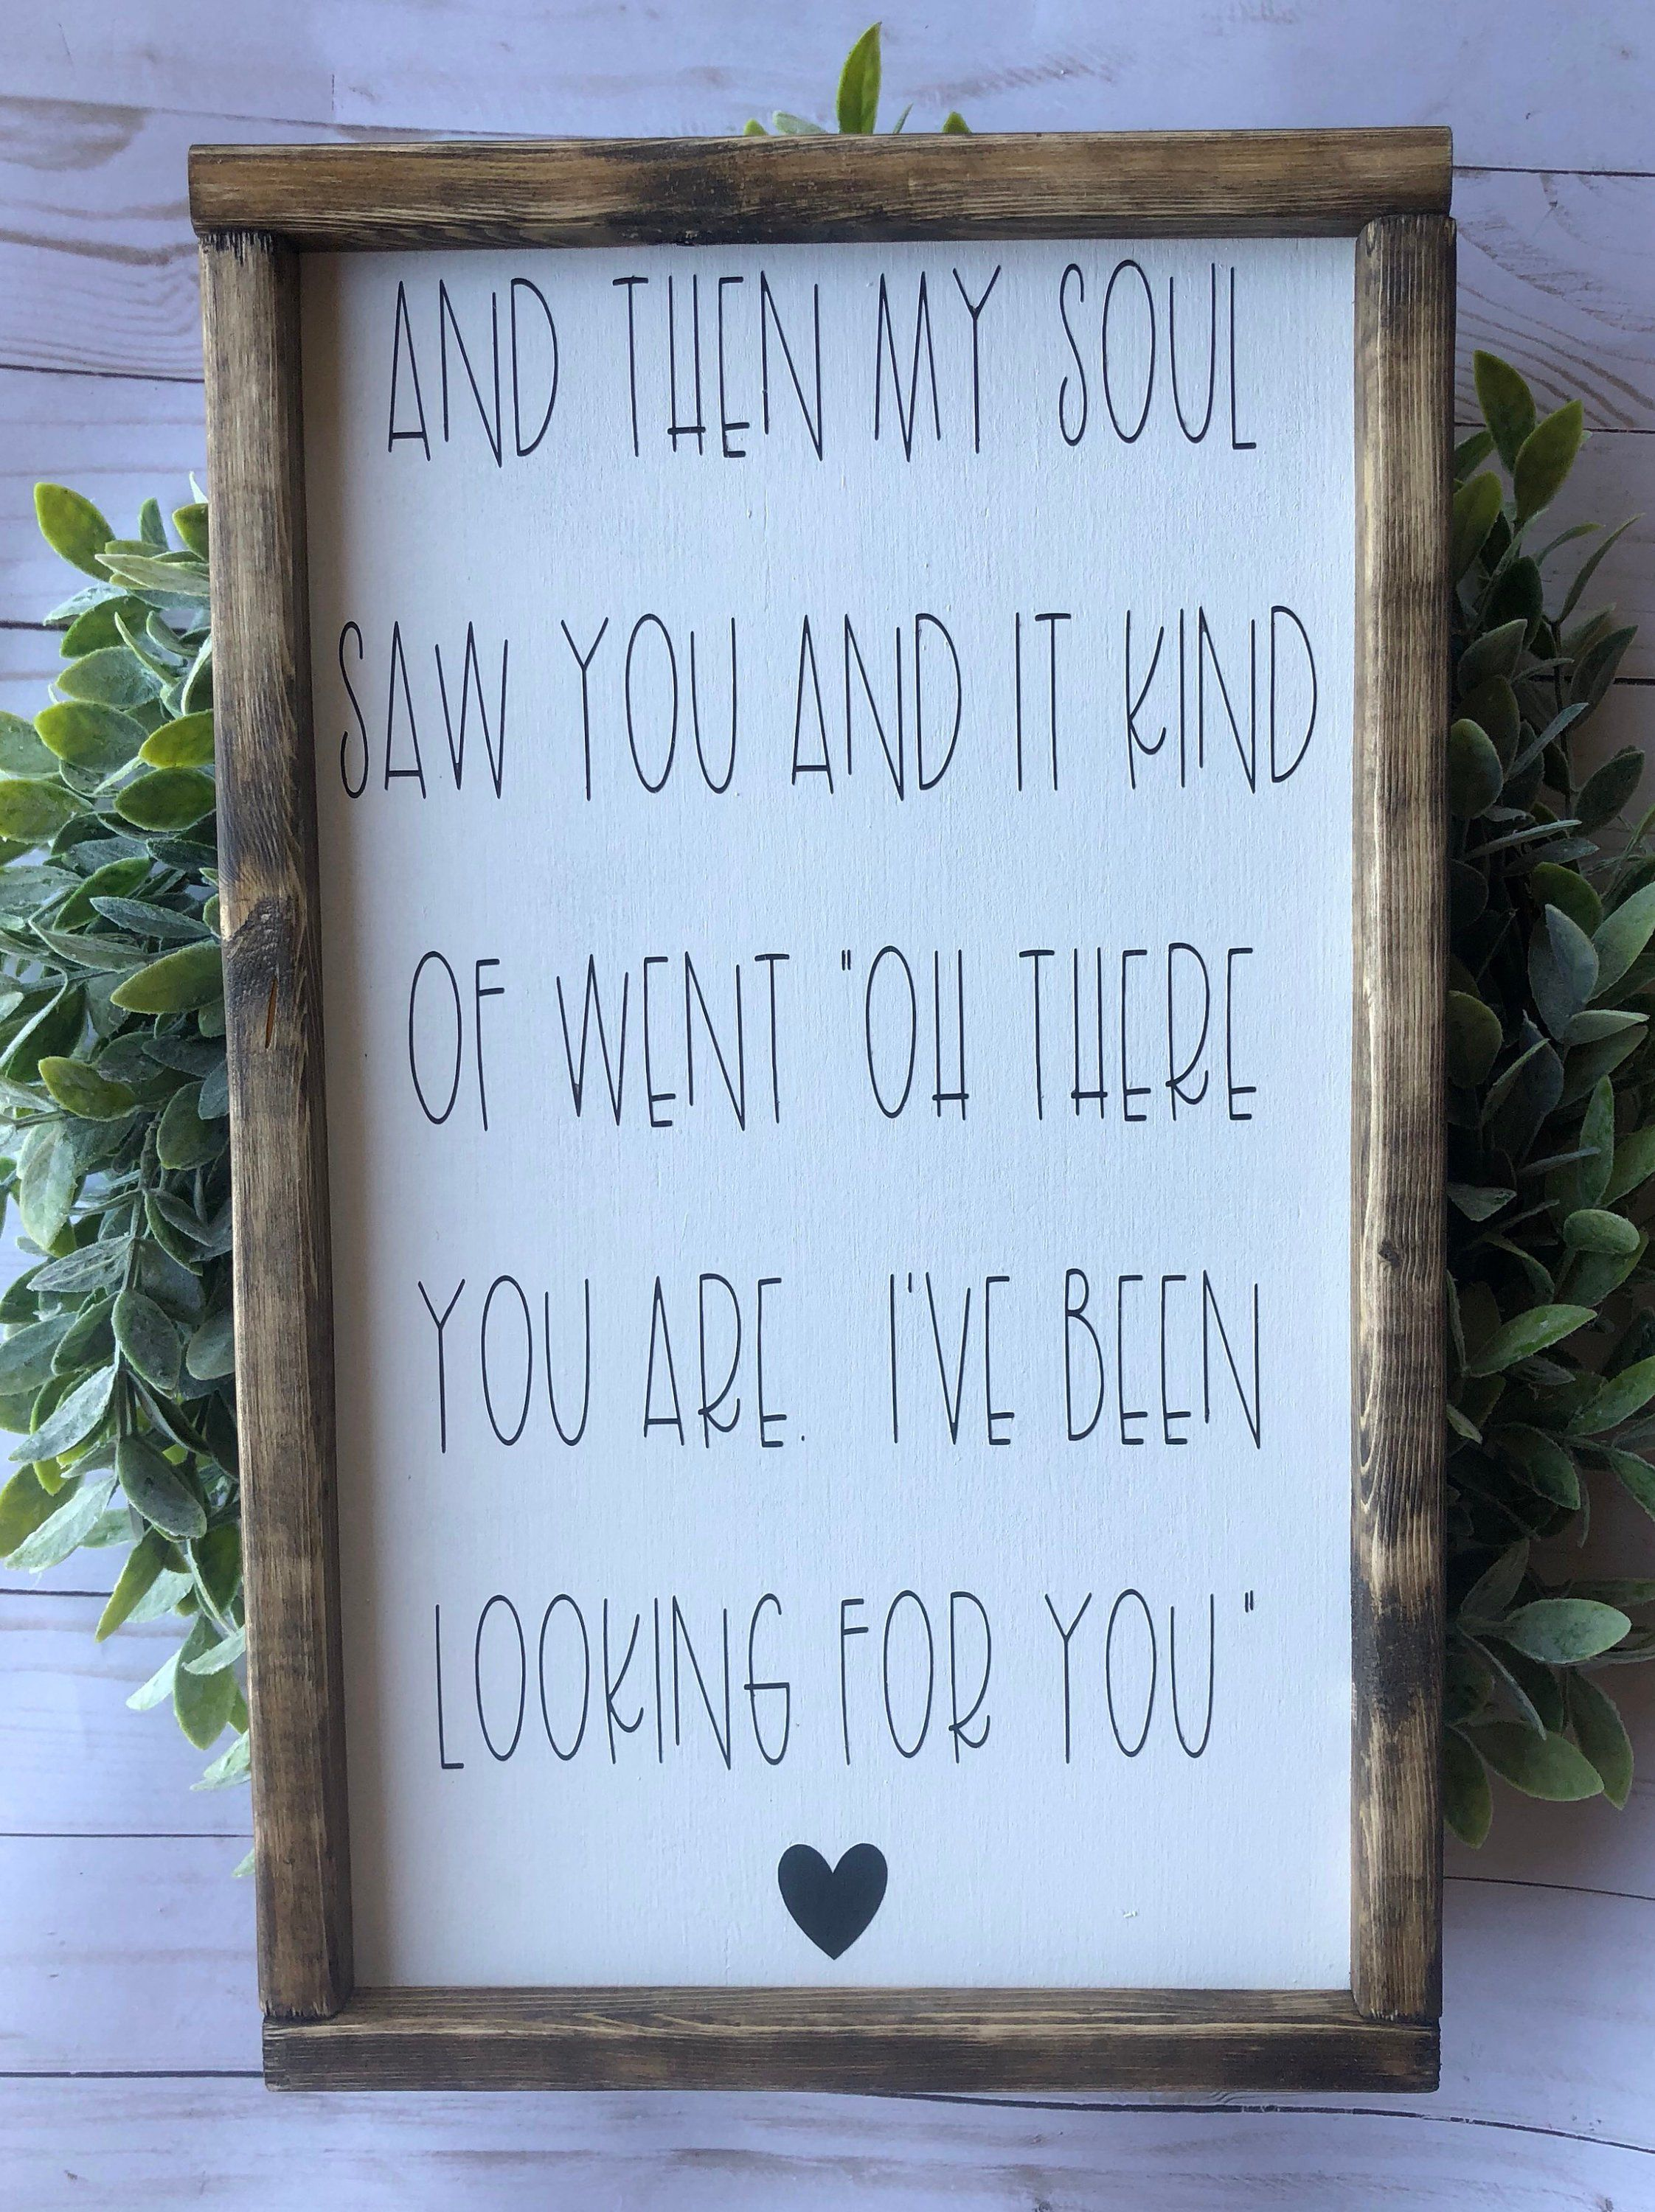 Photo of Signs With Quotes | Farmhouse Decor | Farmhouse Signs | Signs For Home | Wedding Decor | Master Bedroom Signs | Framed Wood Signs